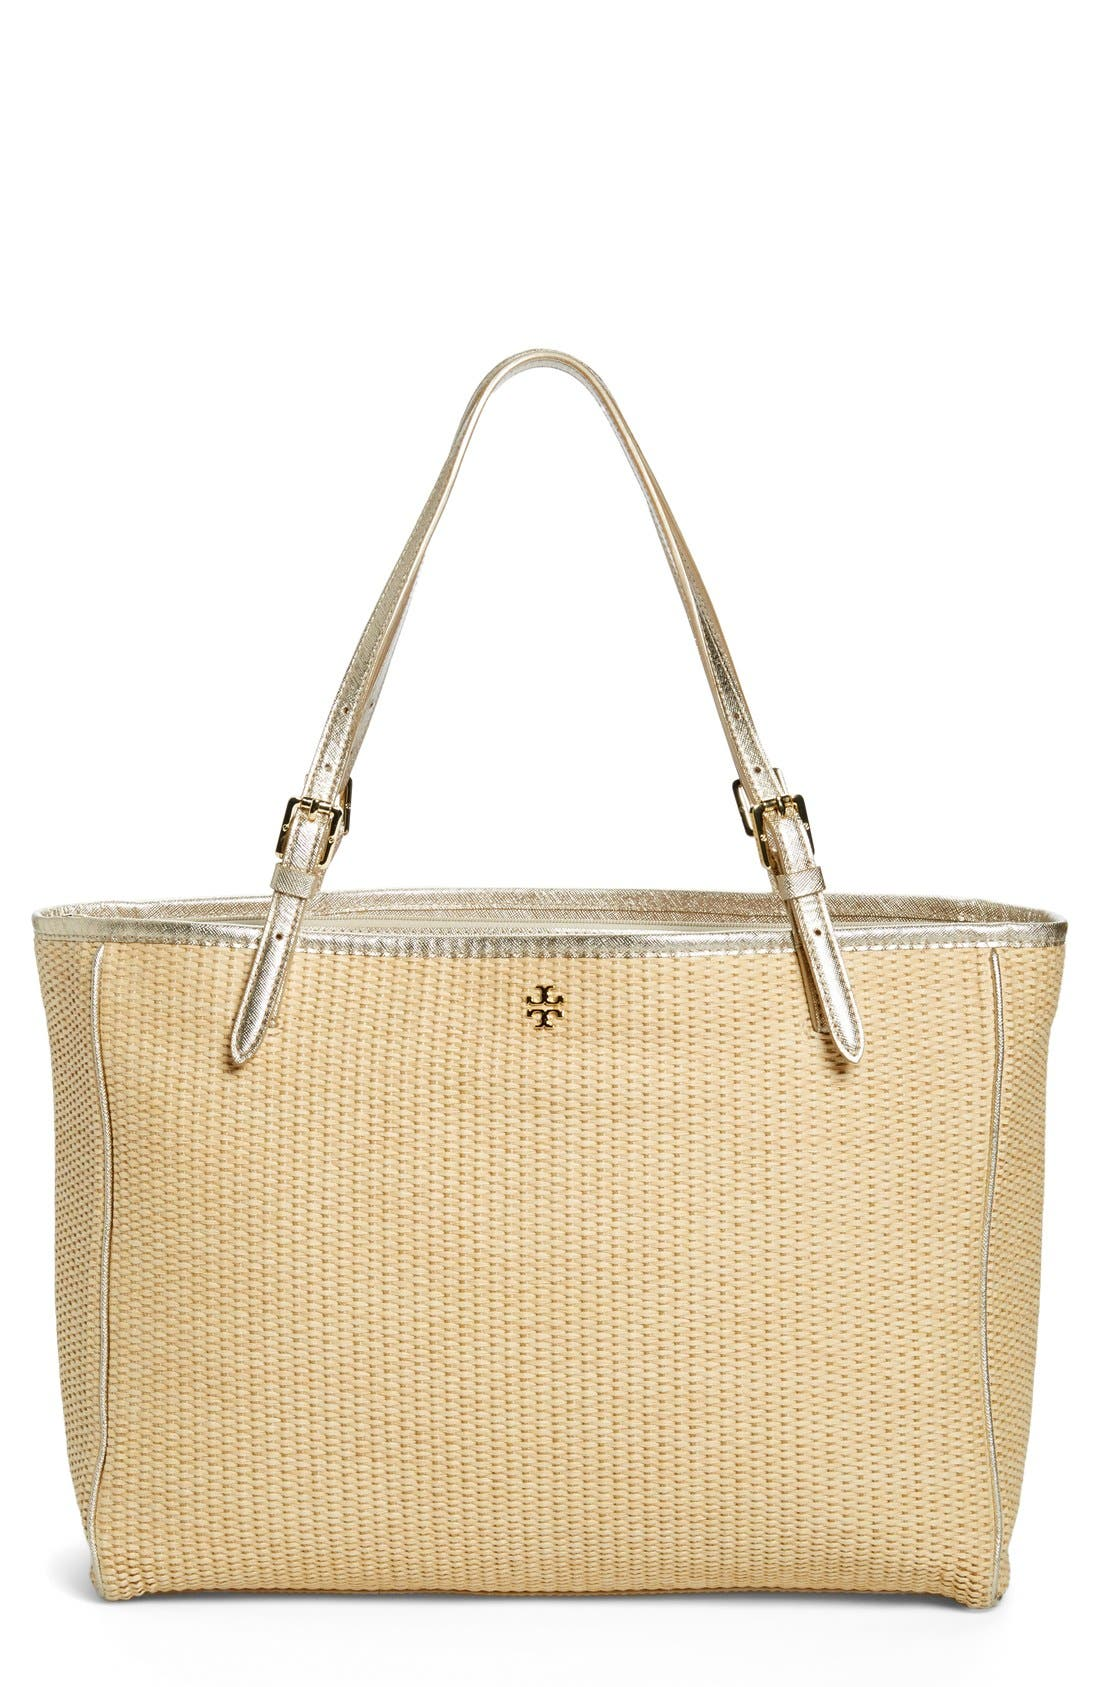 Alternate Image 1 Selected - Tory Burch 'York' Straw Buckle Tote